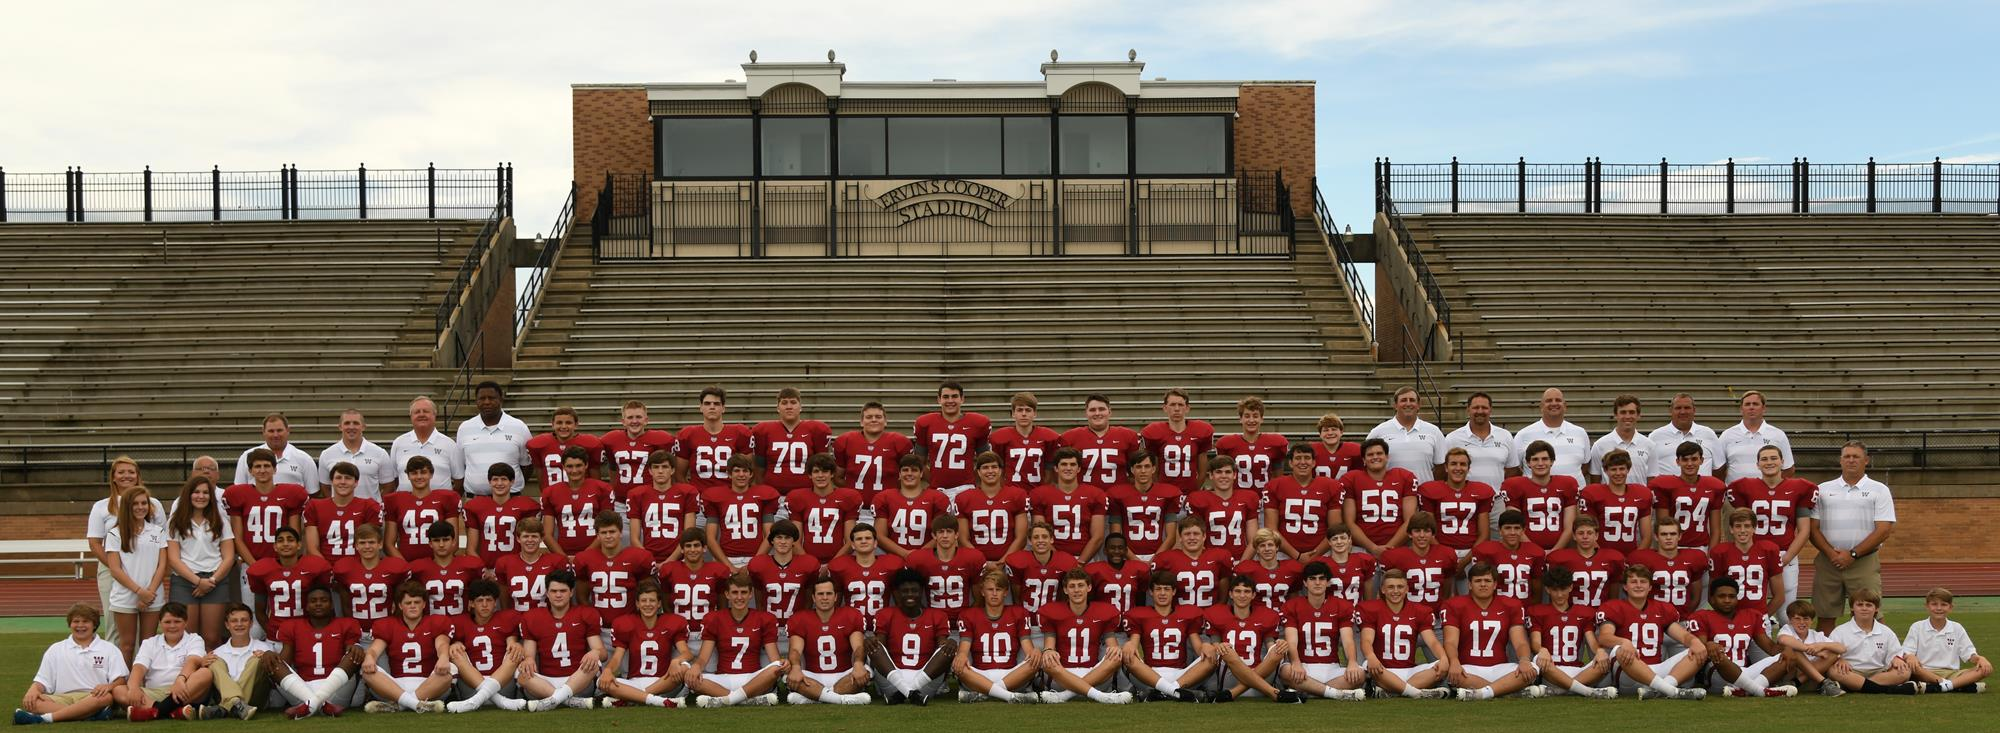 Alabama Football Roster 2018 Varsity Football Roster Ums Wright Preparatory School